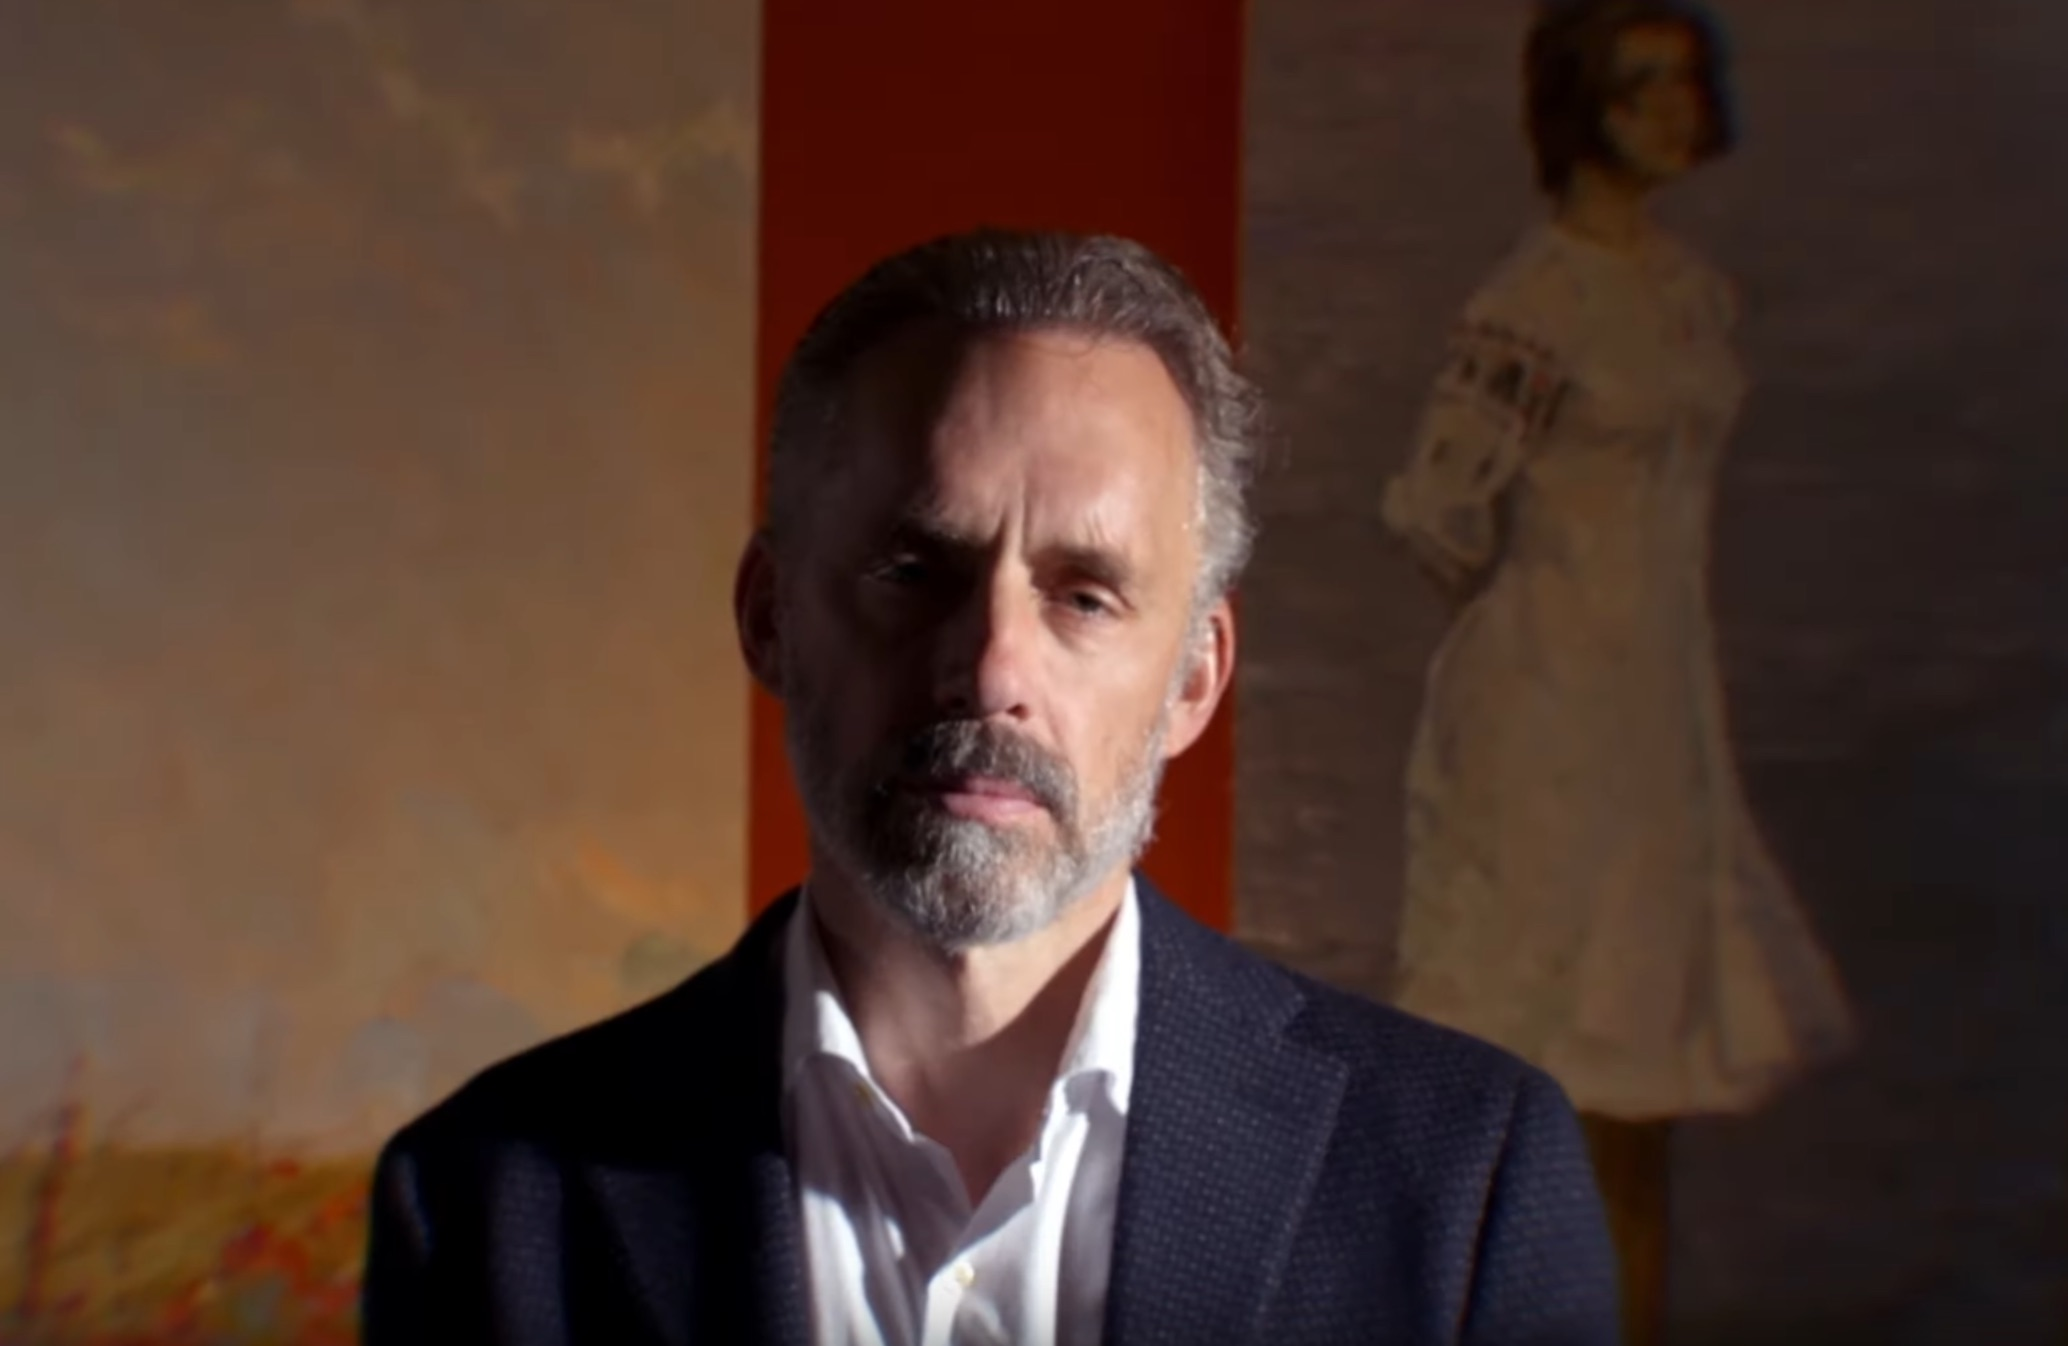 Church threatened over Jordan Peterson screening: Don't make us 'bring out the guillotine'